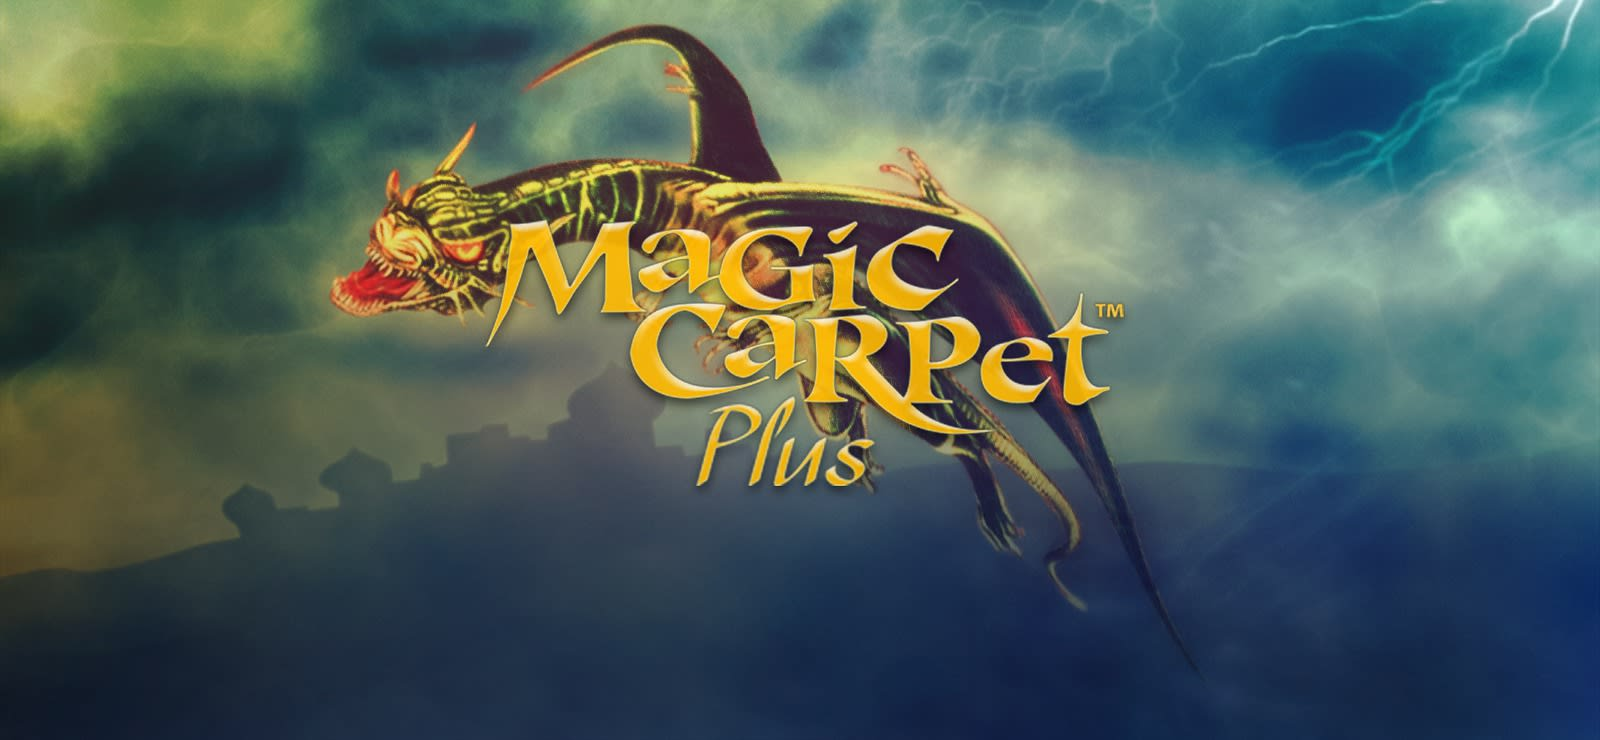 Magic Carpet Plus varies-with-device